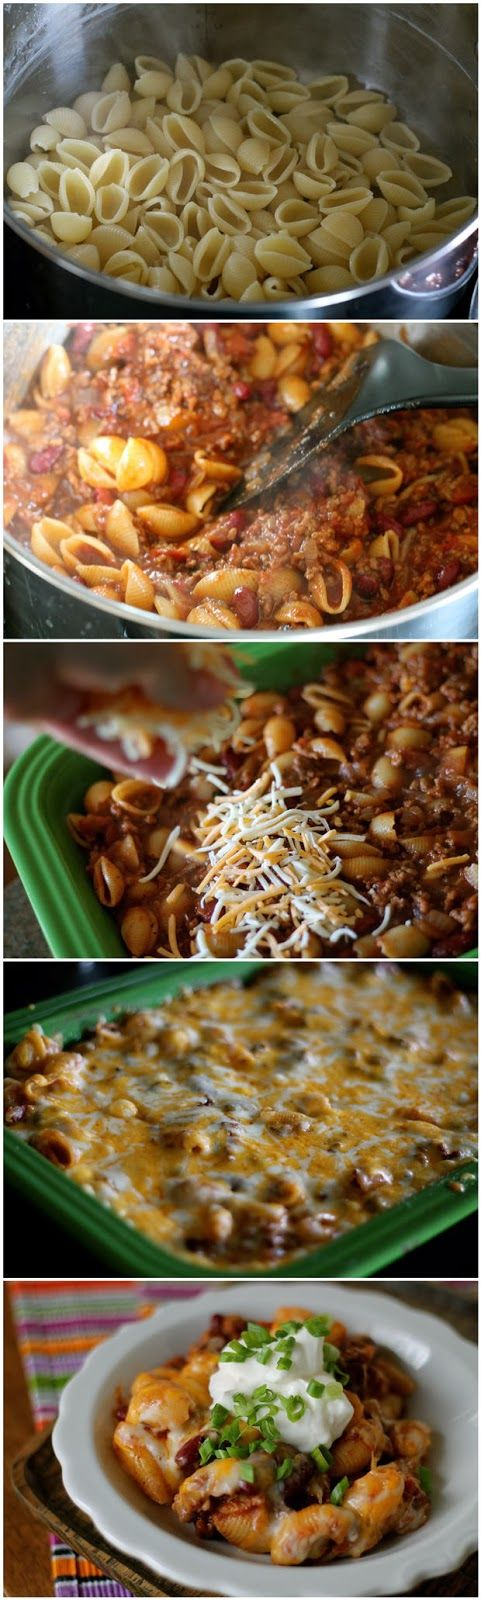 Ingredients:    ½ Tablespoons Canola Or Vegetable Oil  1 pound Ground Beef  1 whole Onion, Chopped  1 dash Salt  1 dash Black Pepper  ½ po...